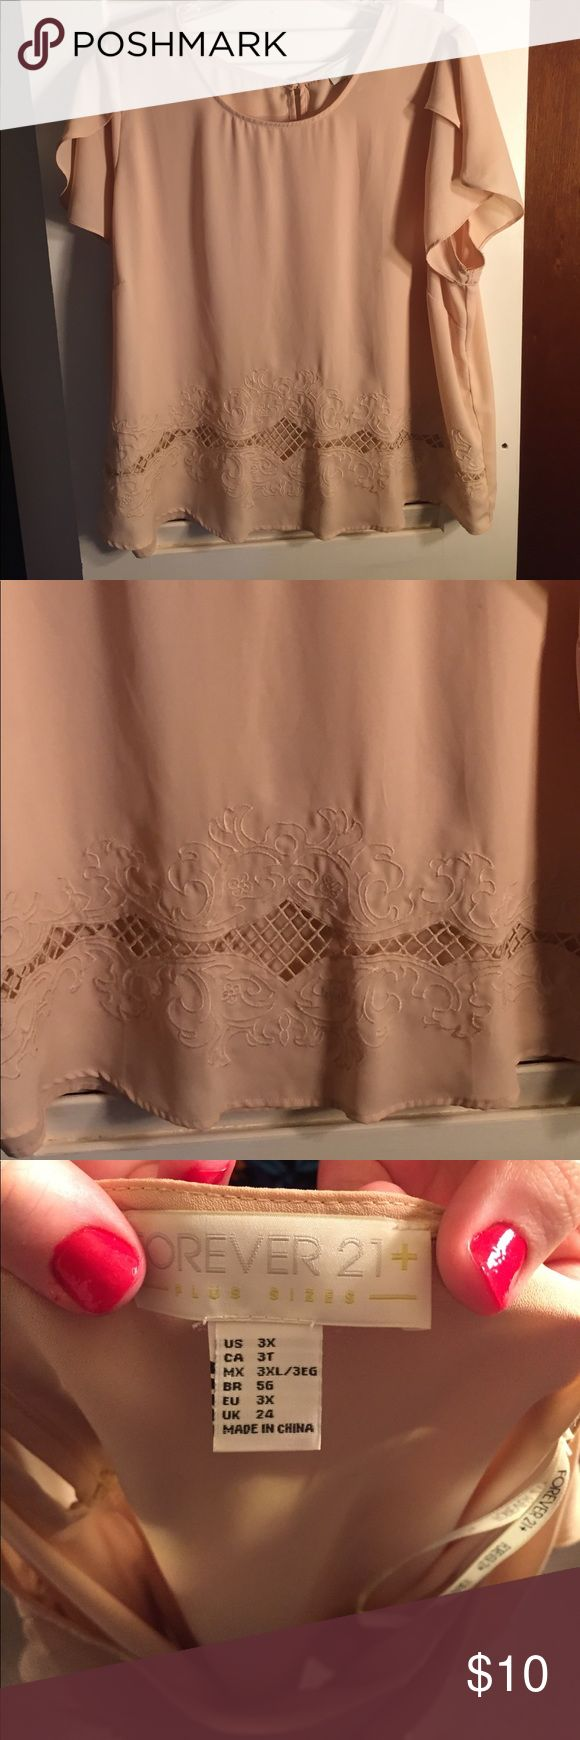 Cream colored Blouse EUC, only worn once. Pale pink short sleeve top with cut out at bottom. Charlotte Russe Tops Blouses